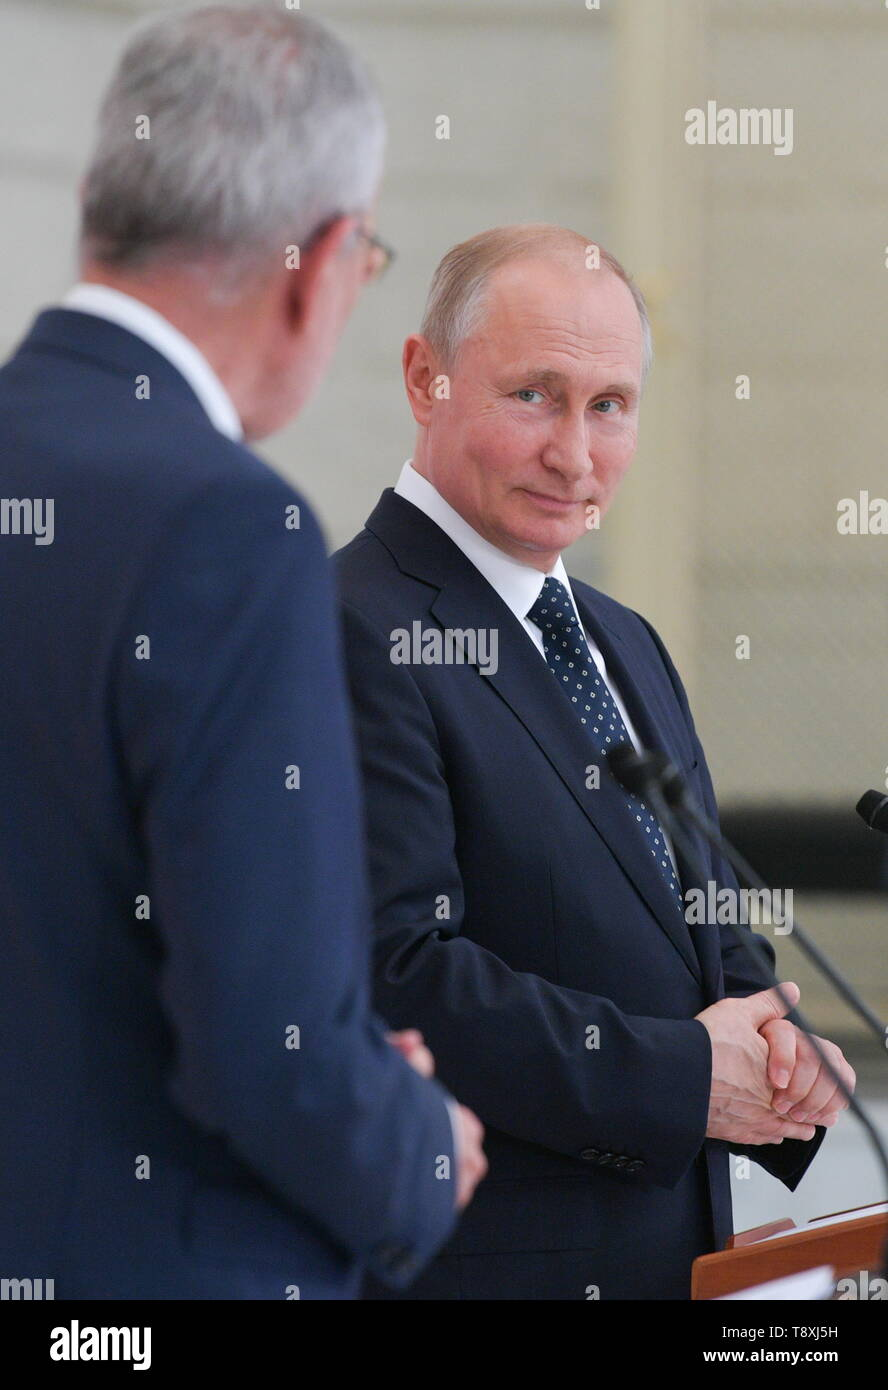 Sochi, Russia. 15th May, 2019. SOCHI, RUSSIA - MAY 15, 2019: Austria's President Alexander Van der Bellen (L) and Russia's President Vladimir Putin at a joint press conference following their meeting at the Rus health resort. Alexei Druzhinin/Russian Presidential Press and Information Office/TASS Credit: ITAR-TASS News Agency/Alamy Live News - Stock Image